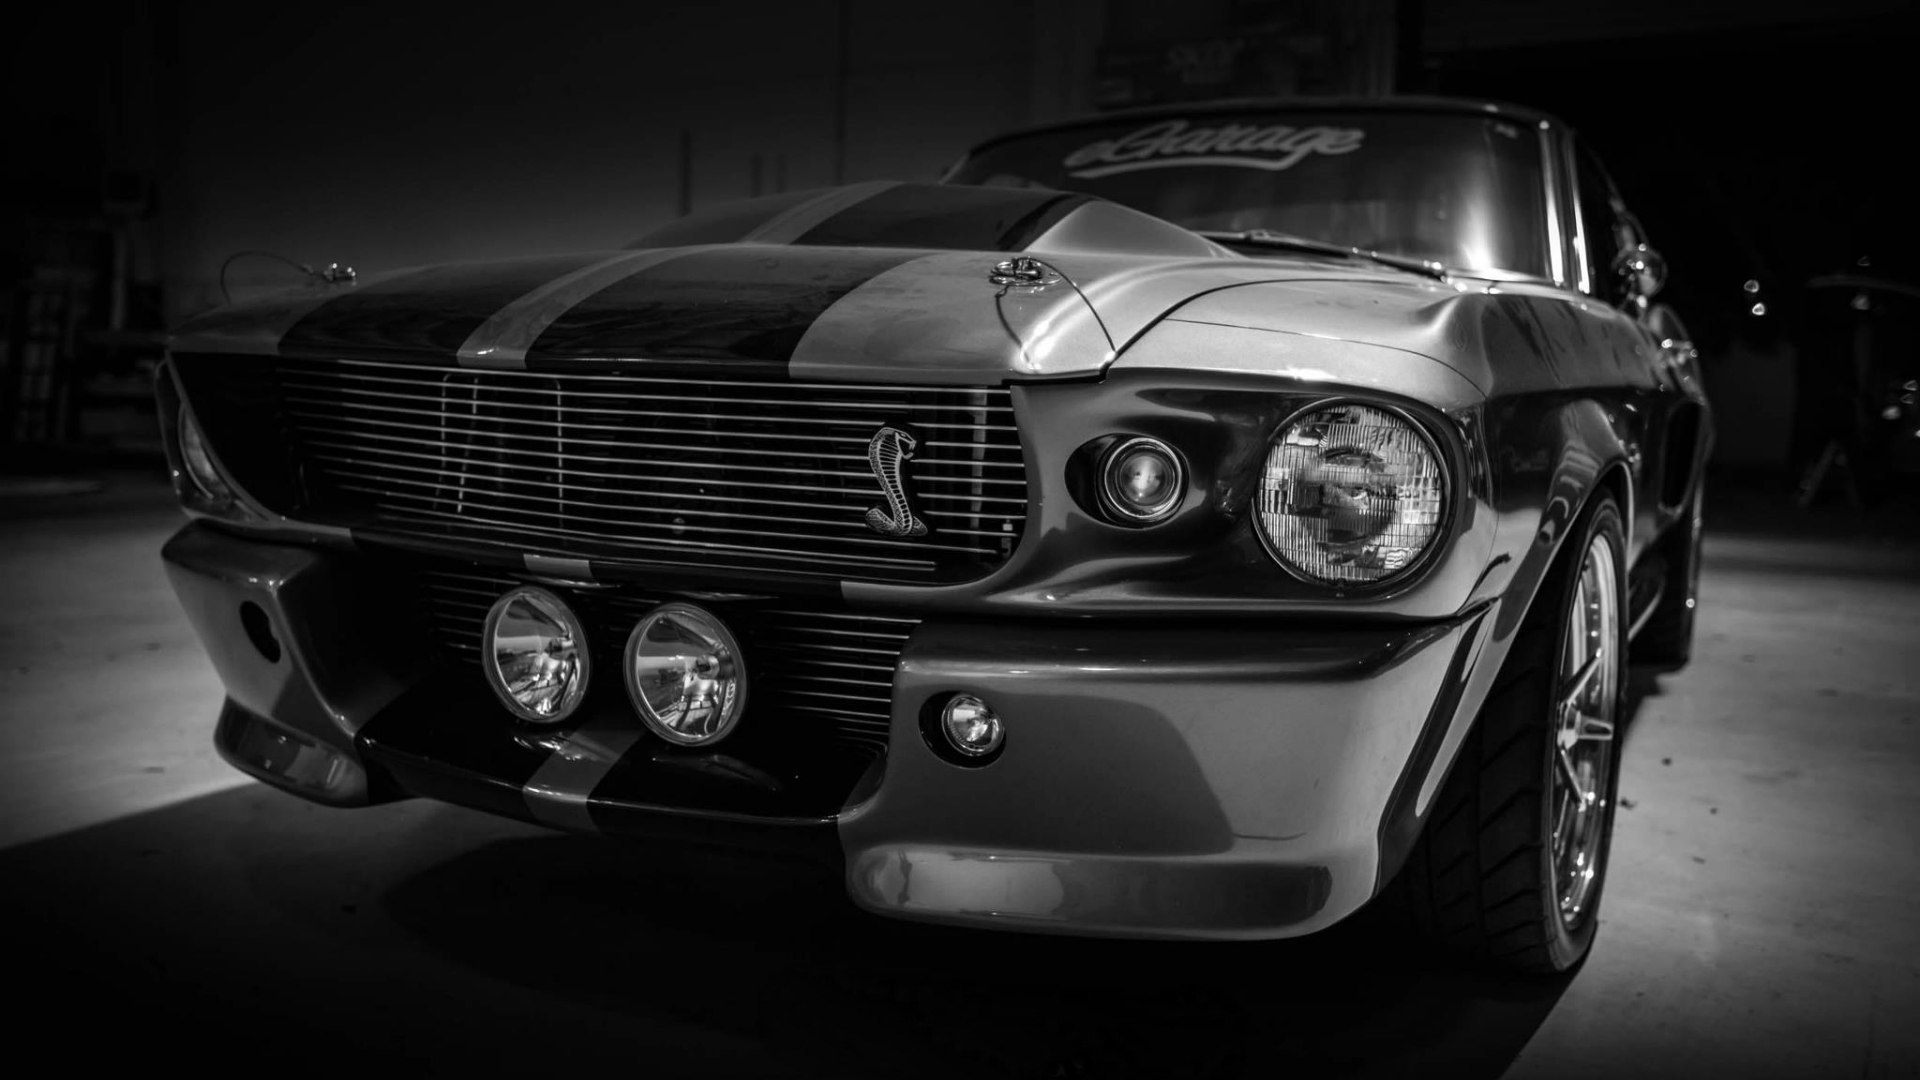 Shelby Gt500 Hd Wallpaper With Images Ford Mustang Shelby